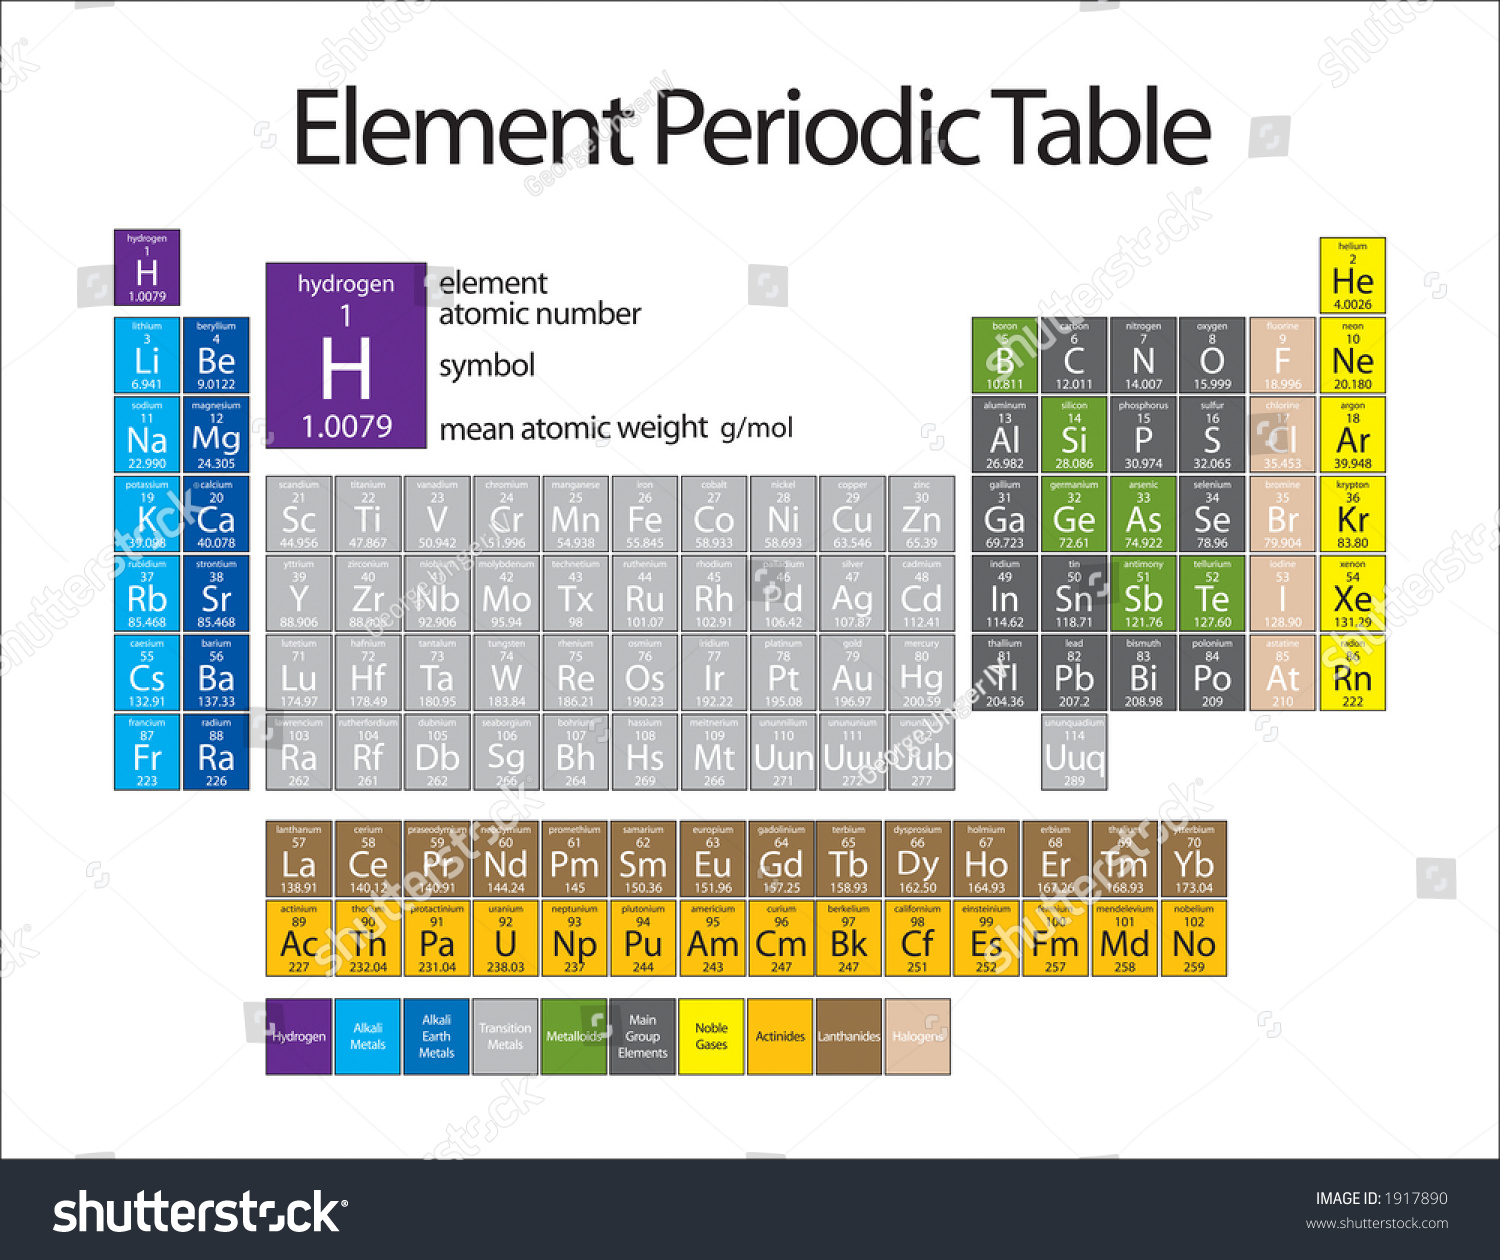 Chemistry 101 elemental periodic table their stock vector 1917890 chemistry 101 elemental periodic table with their families color coordinated includes atomic mass gamestrikefo Choice Image